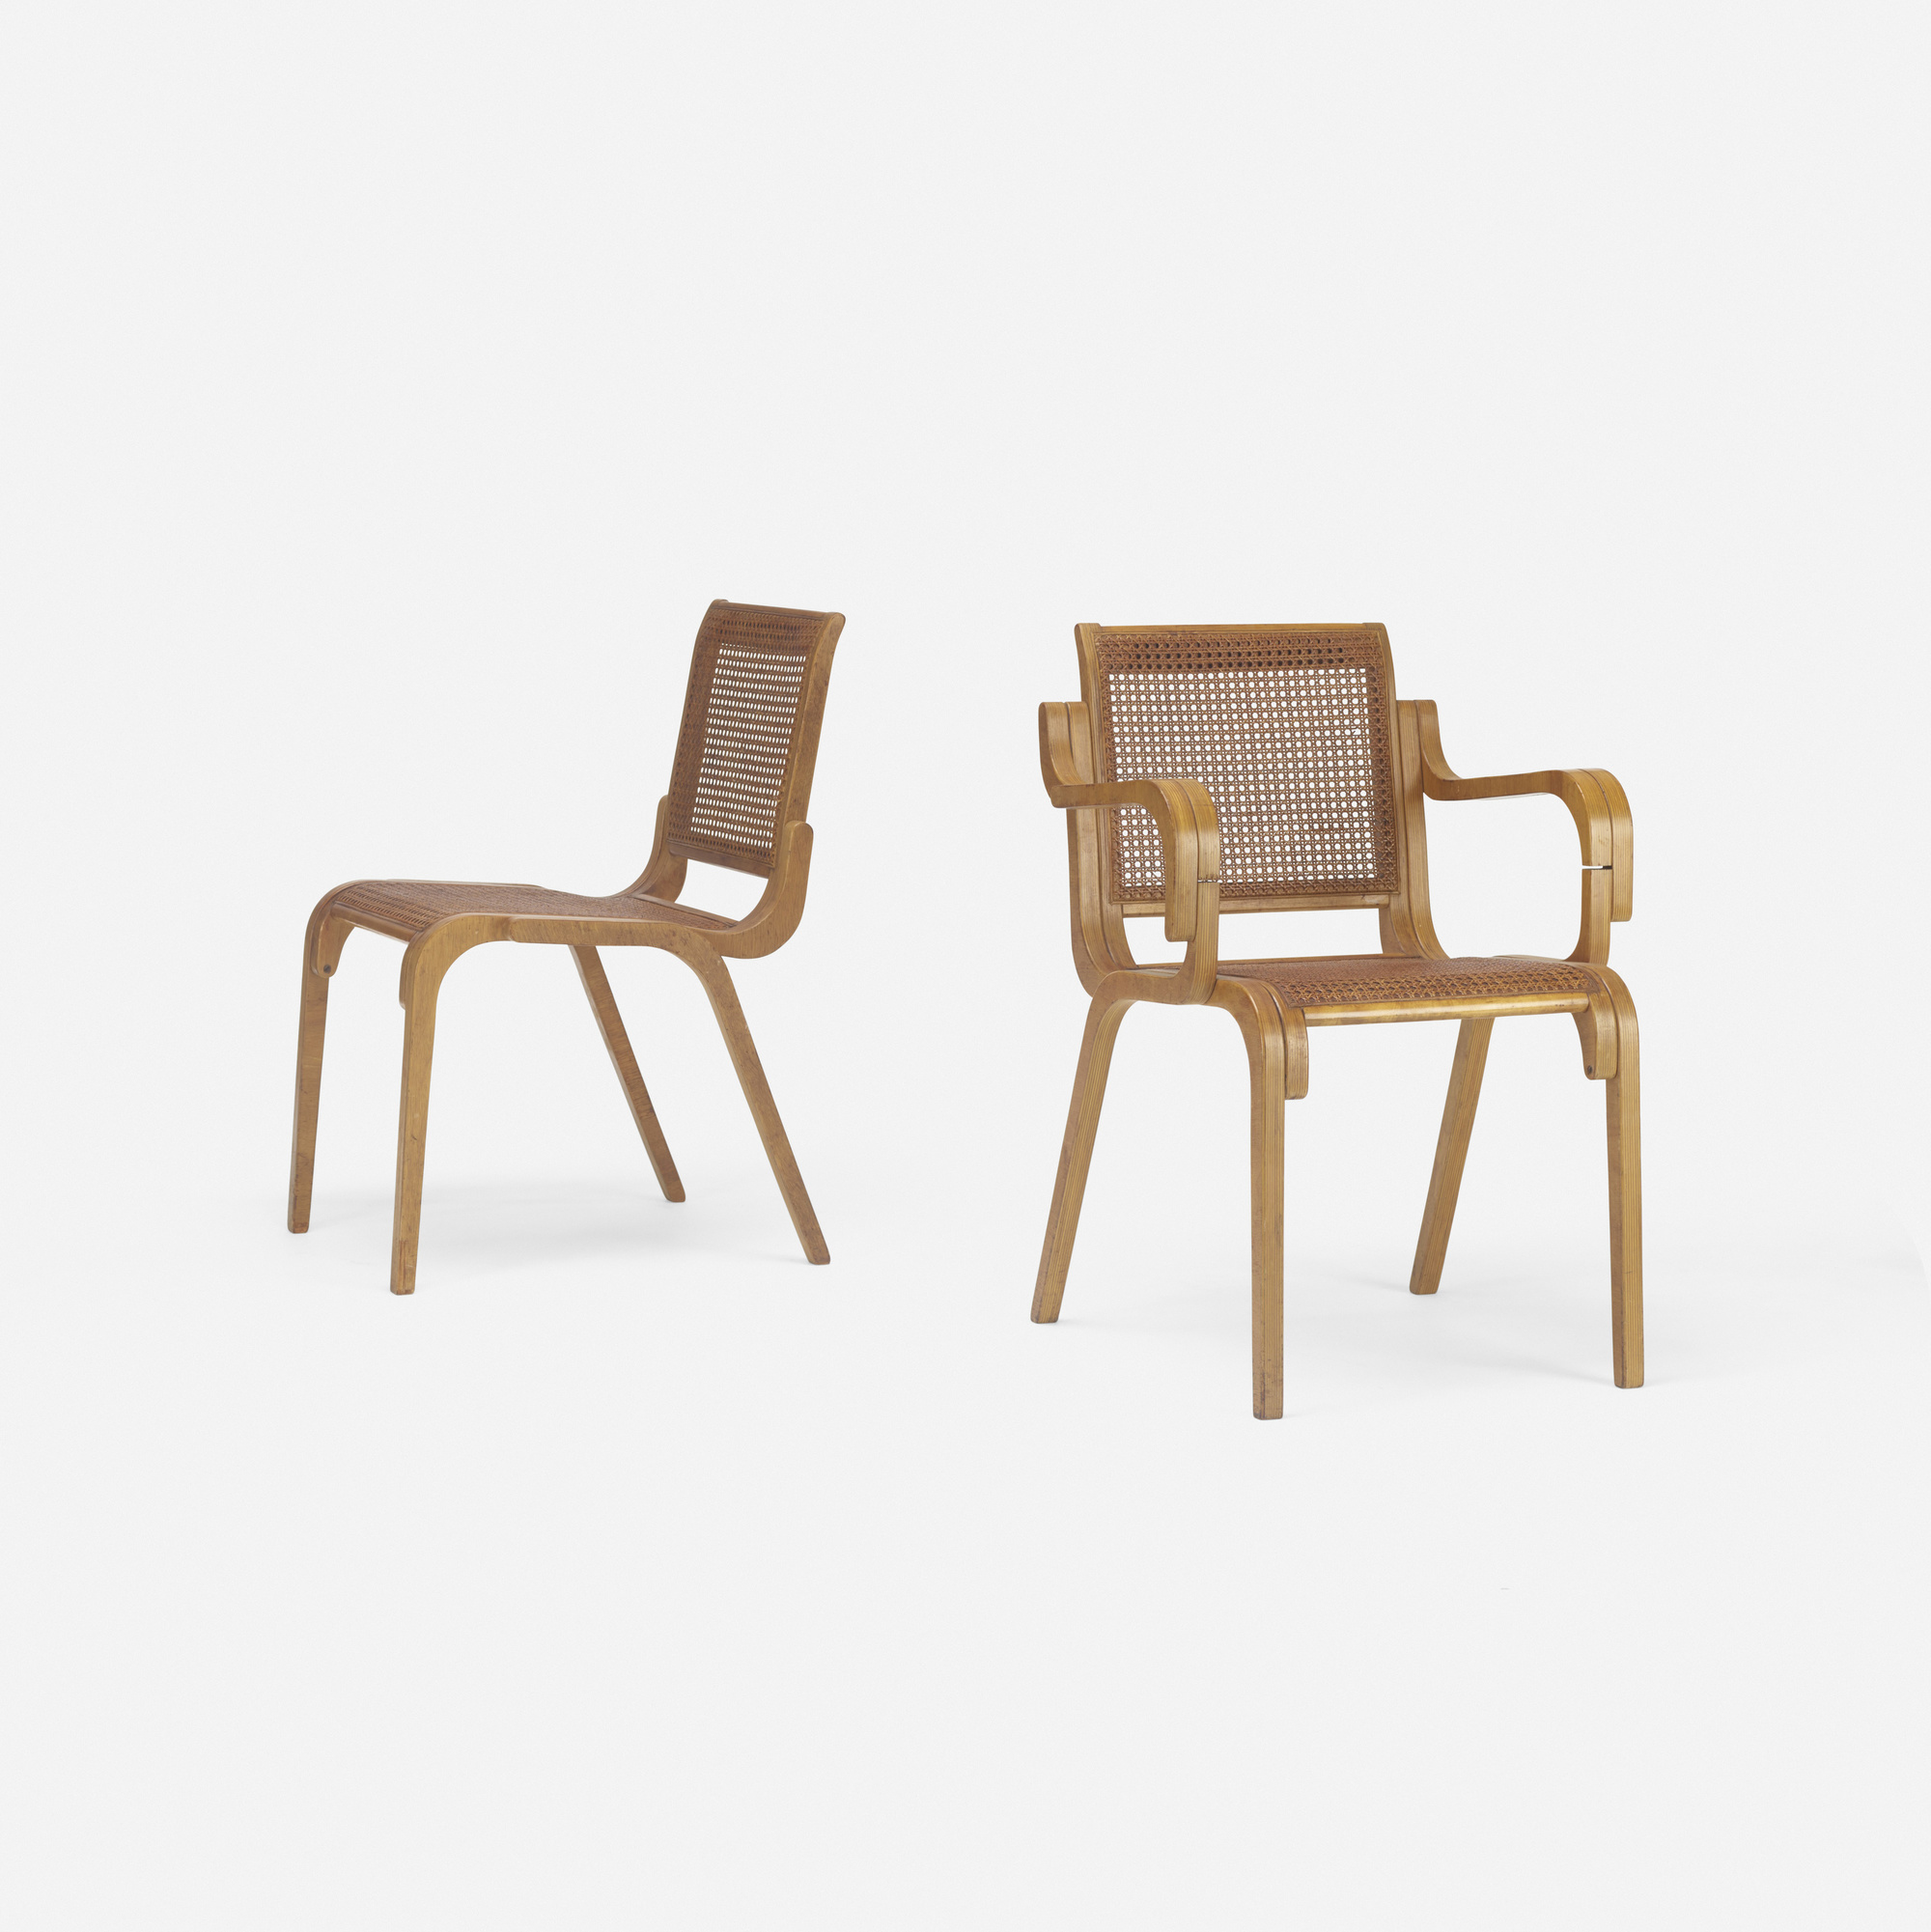 202: Marcel Breuer / rare prototype armchair and side chair (2 of 3)